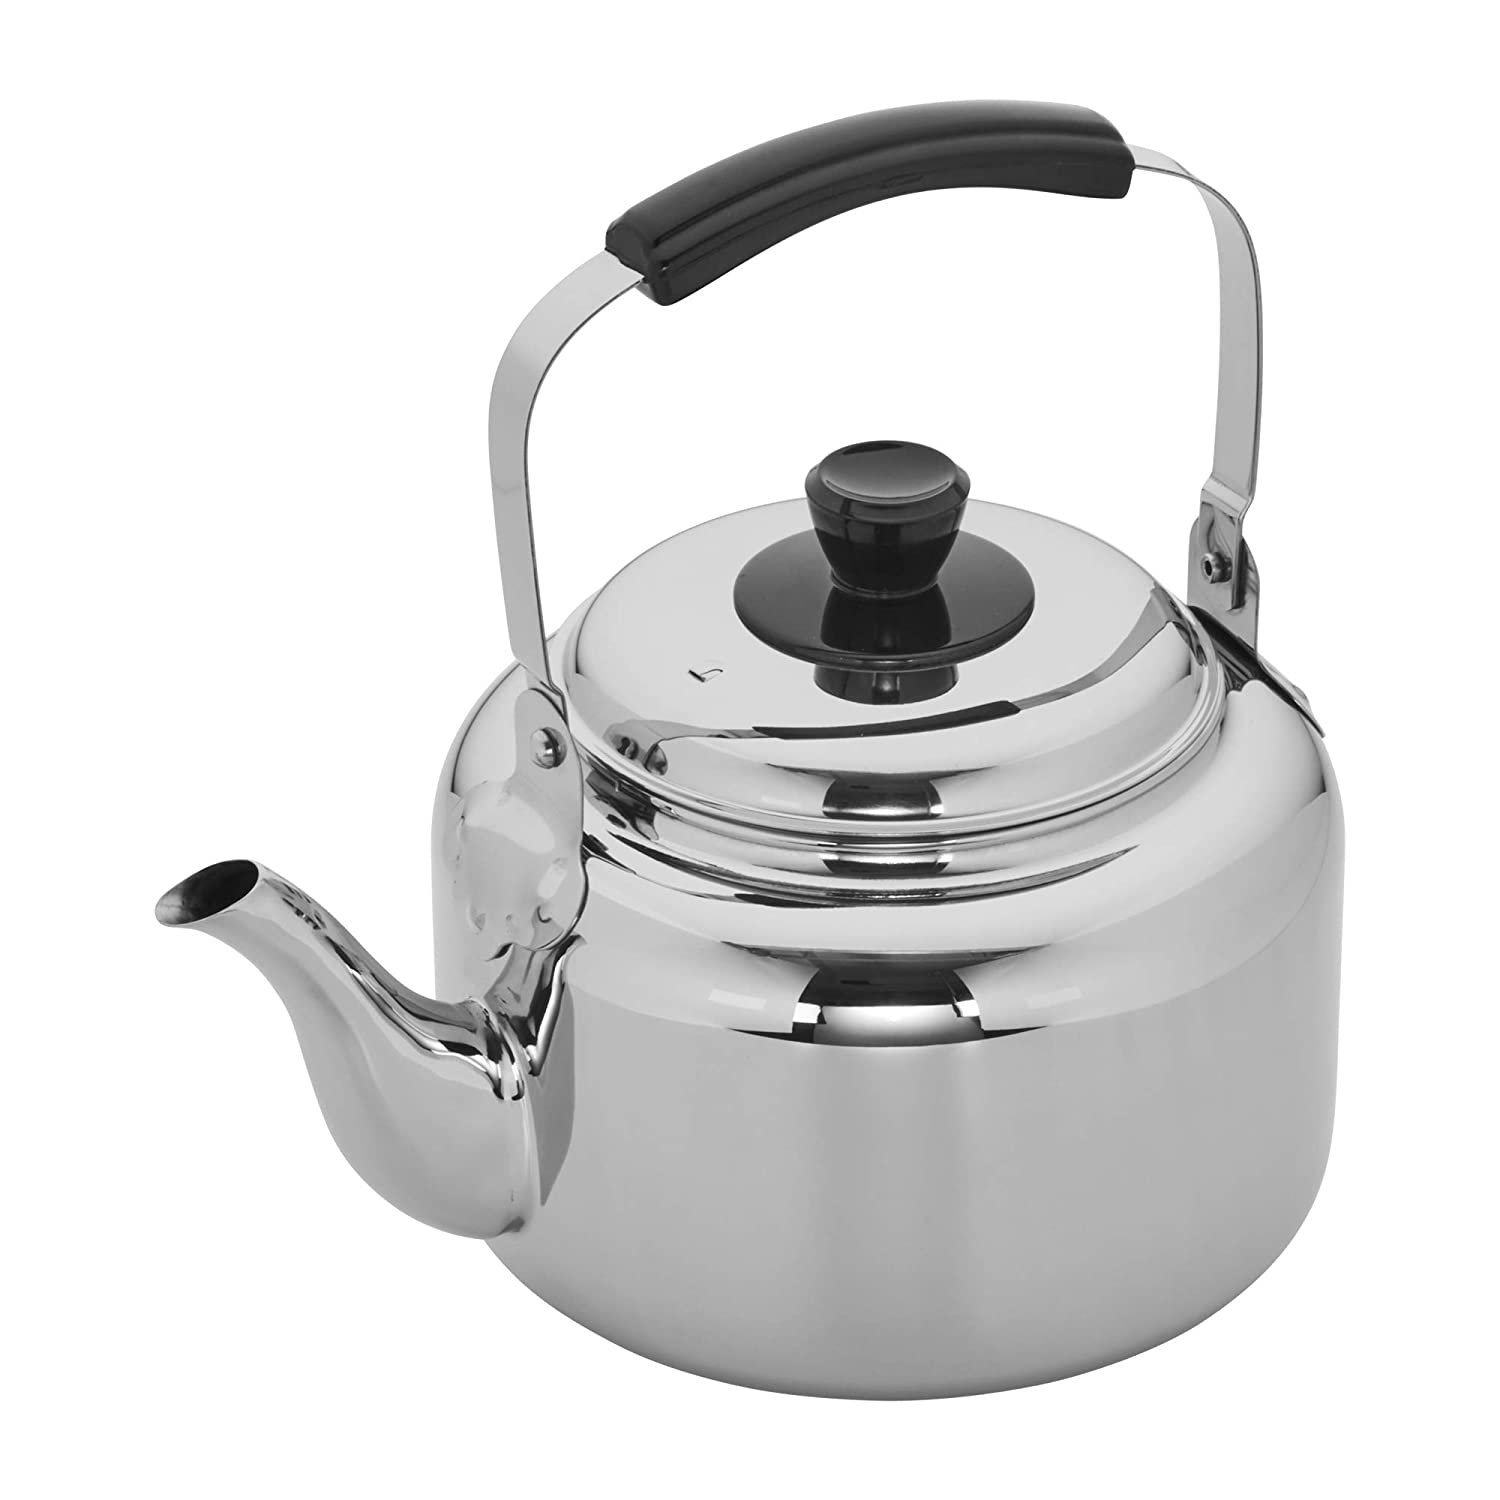 ChangBERT Pour Over Tea Coffee Kettle Gooseneck Stainless Steel Teapot, Works on Gas, Electric, Induction Stovetop – 1L 34oz